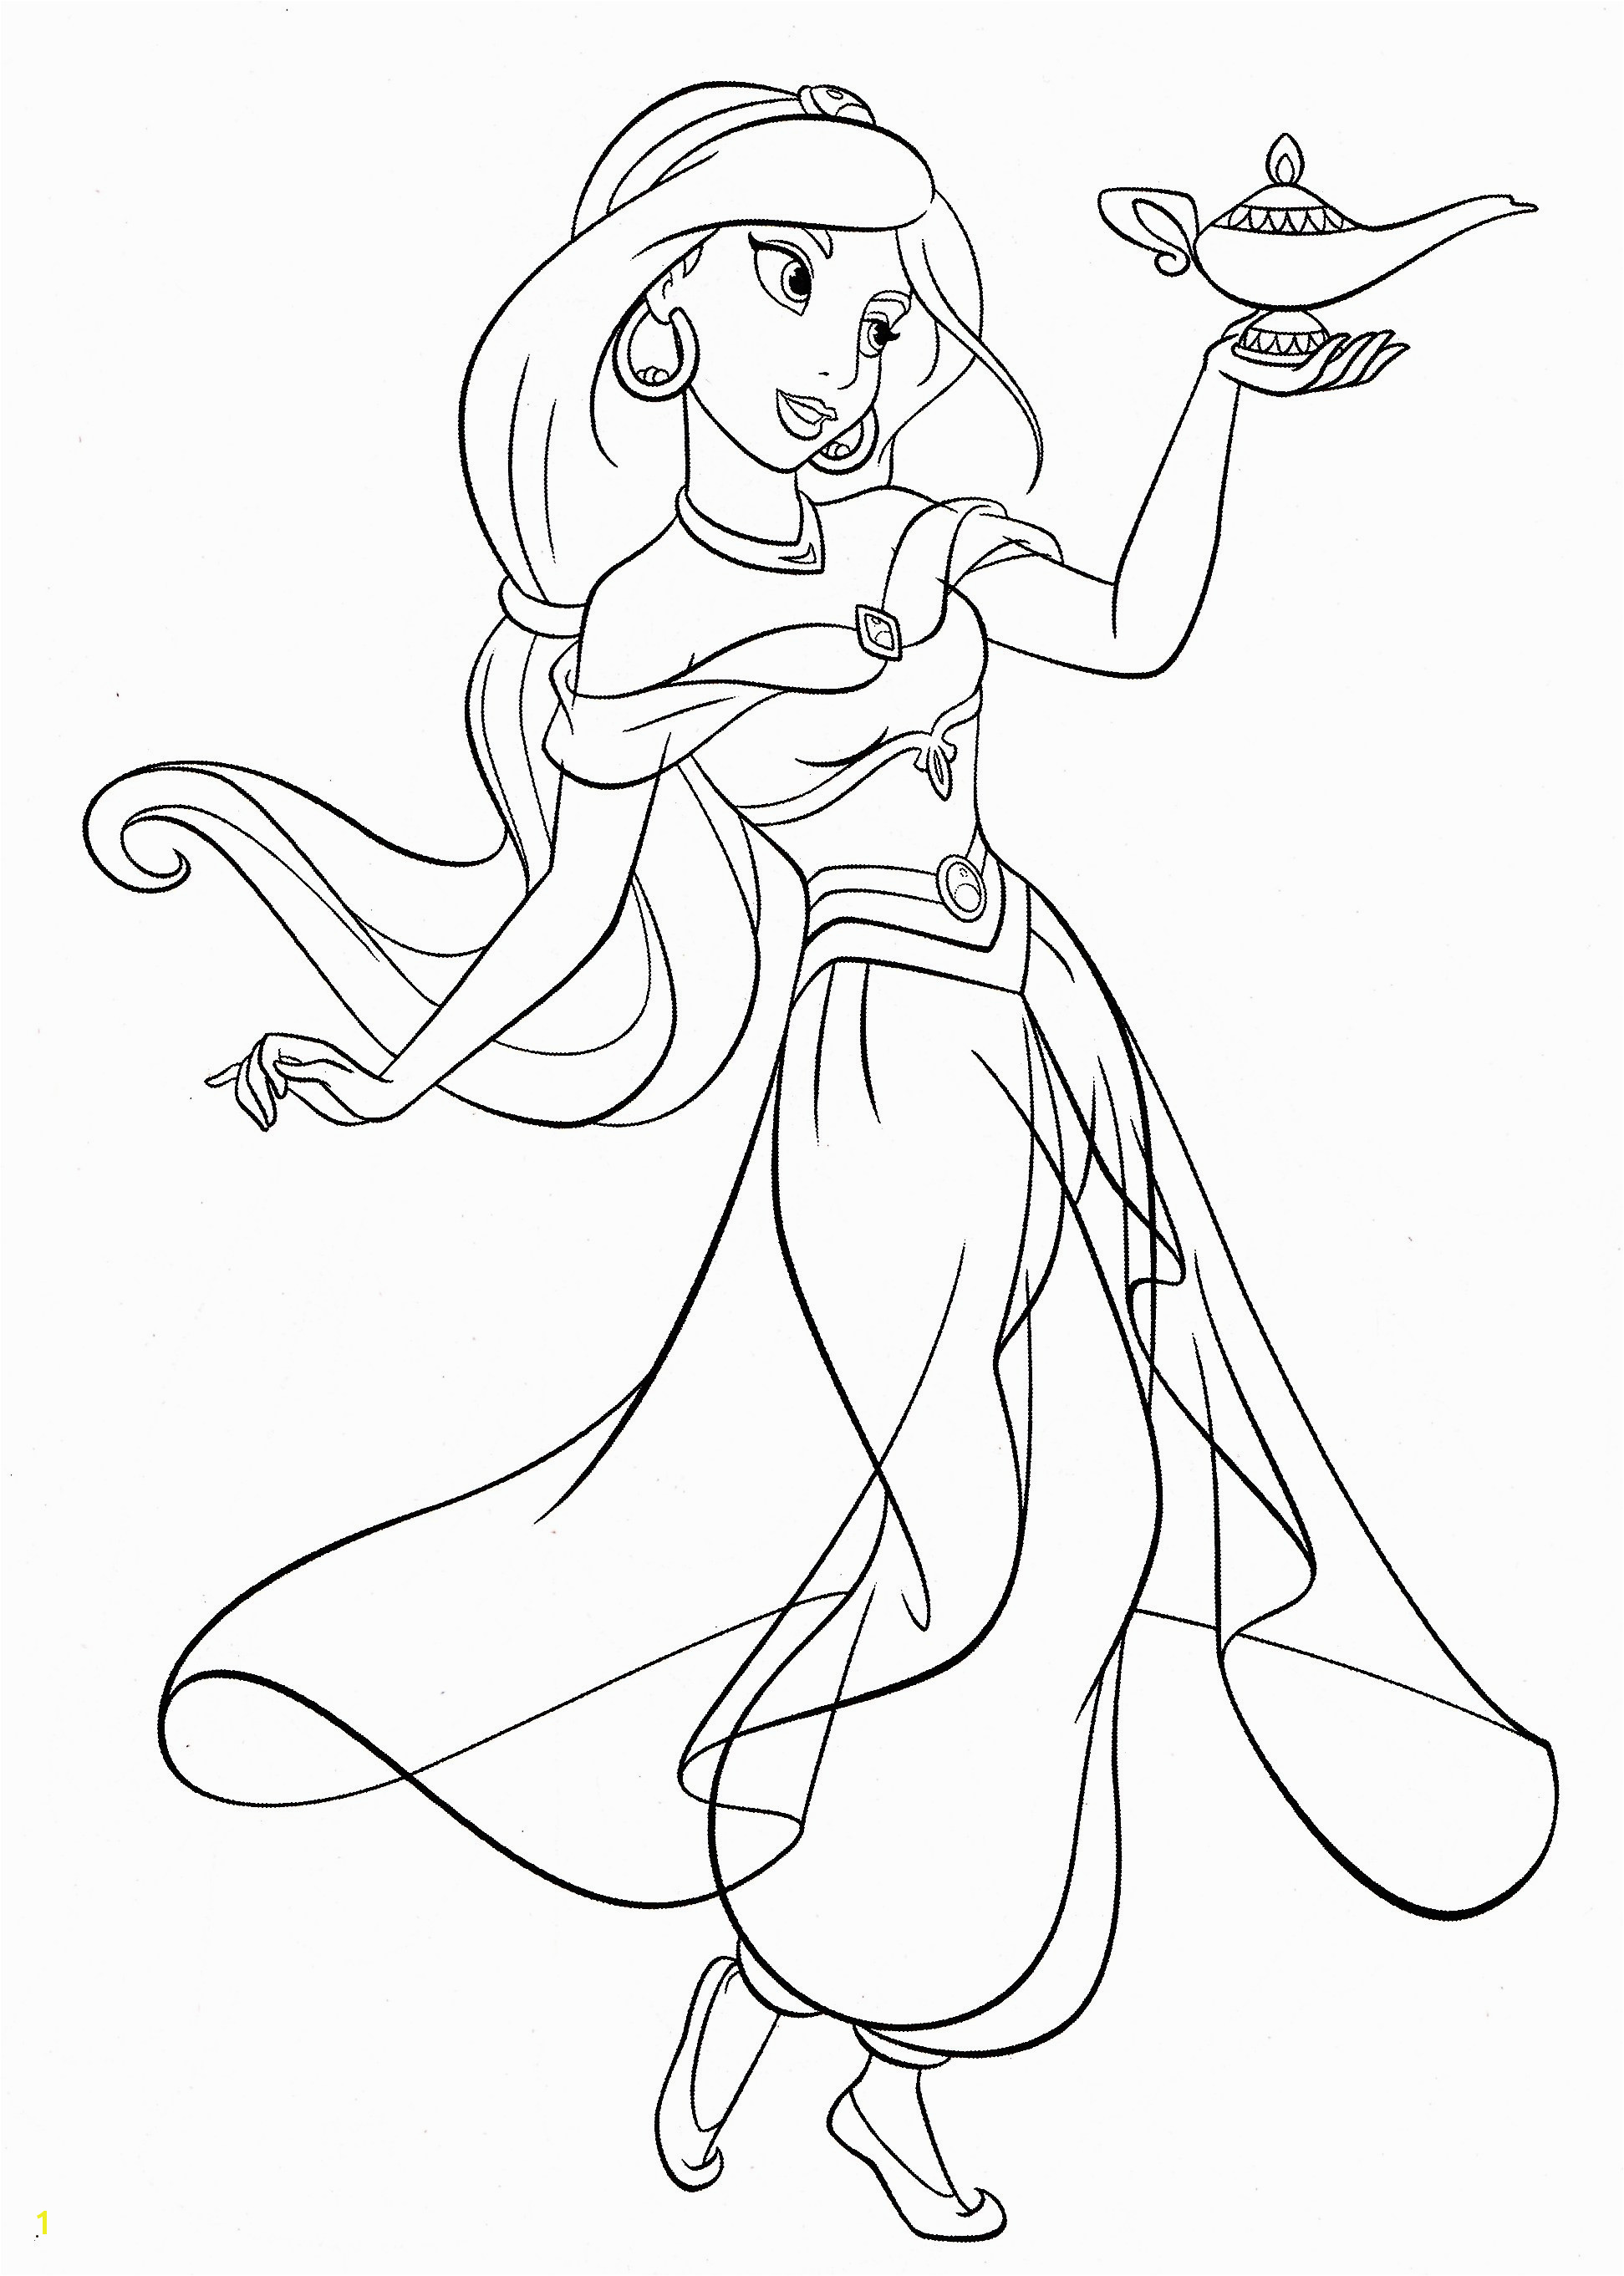 Disney Printing Coloring Pages Best Princess Jasmine Coloring Frisch Disney Princess Ausmalbilder